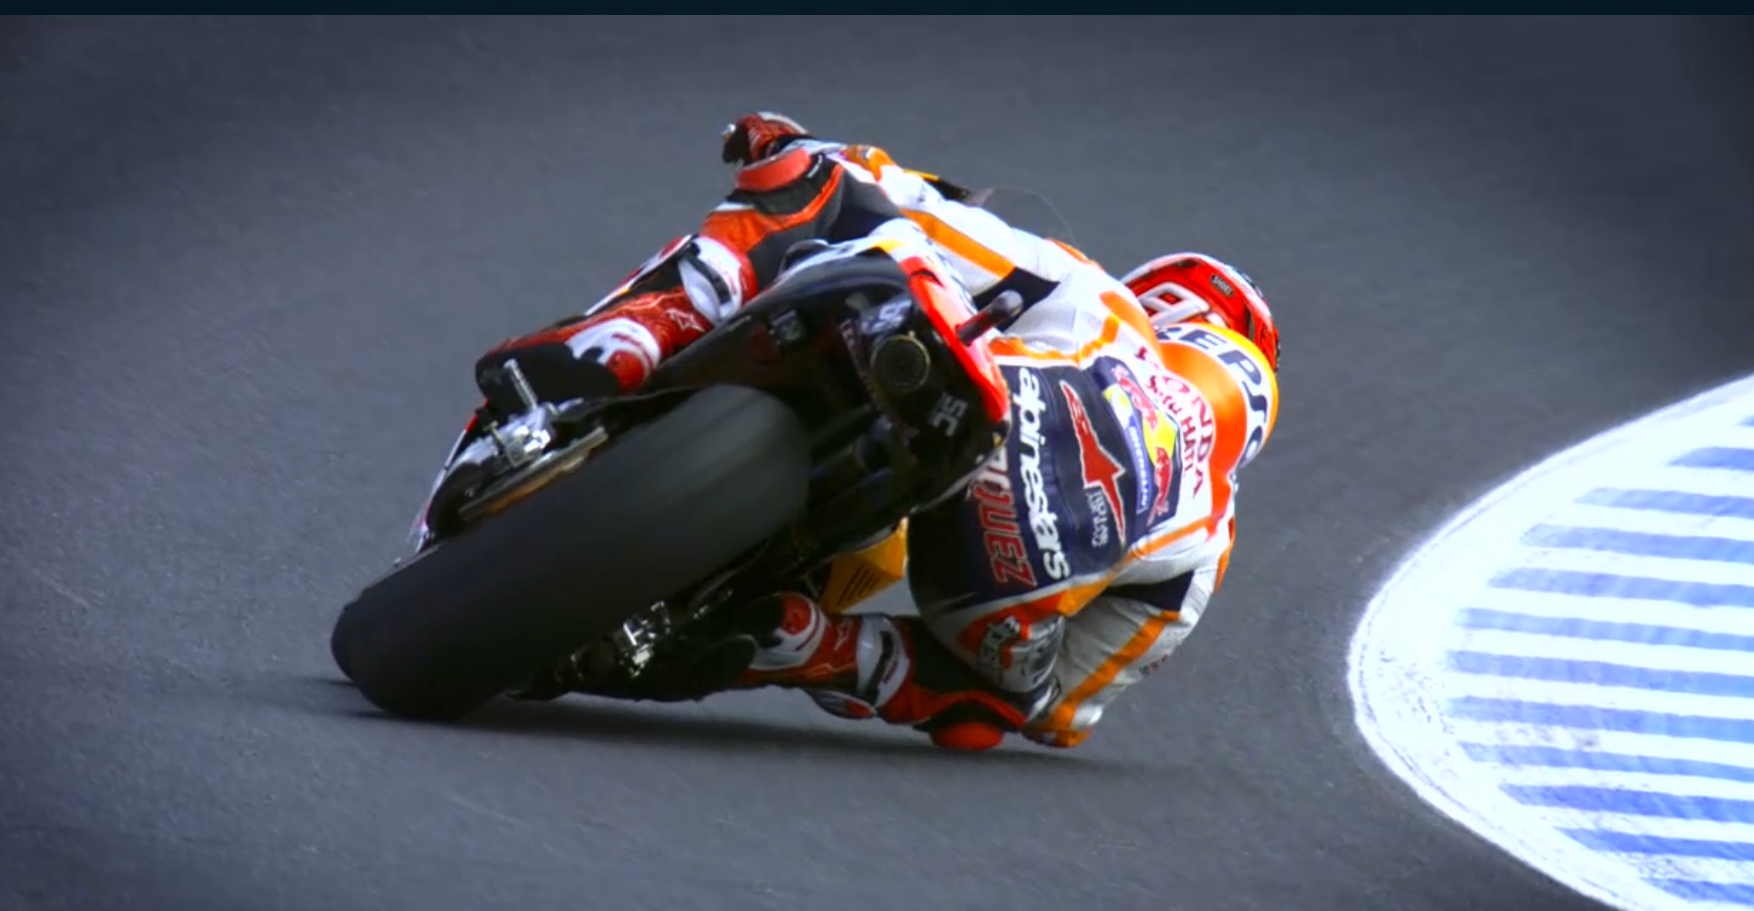 Marquez from behind